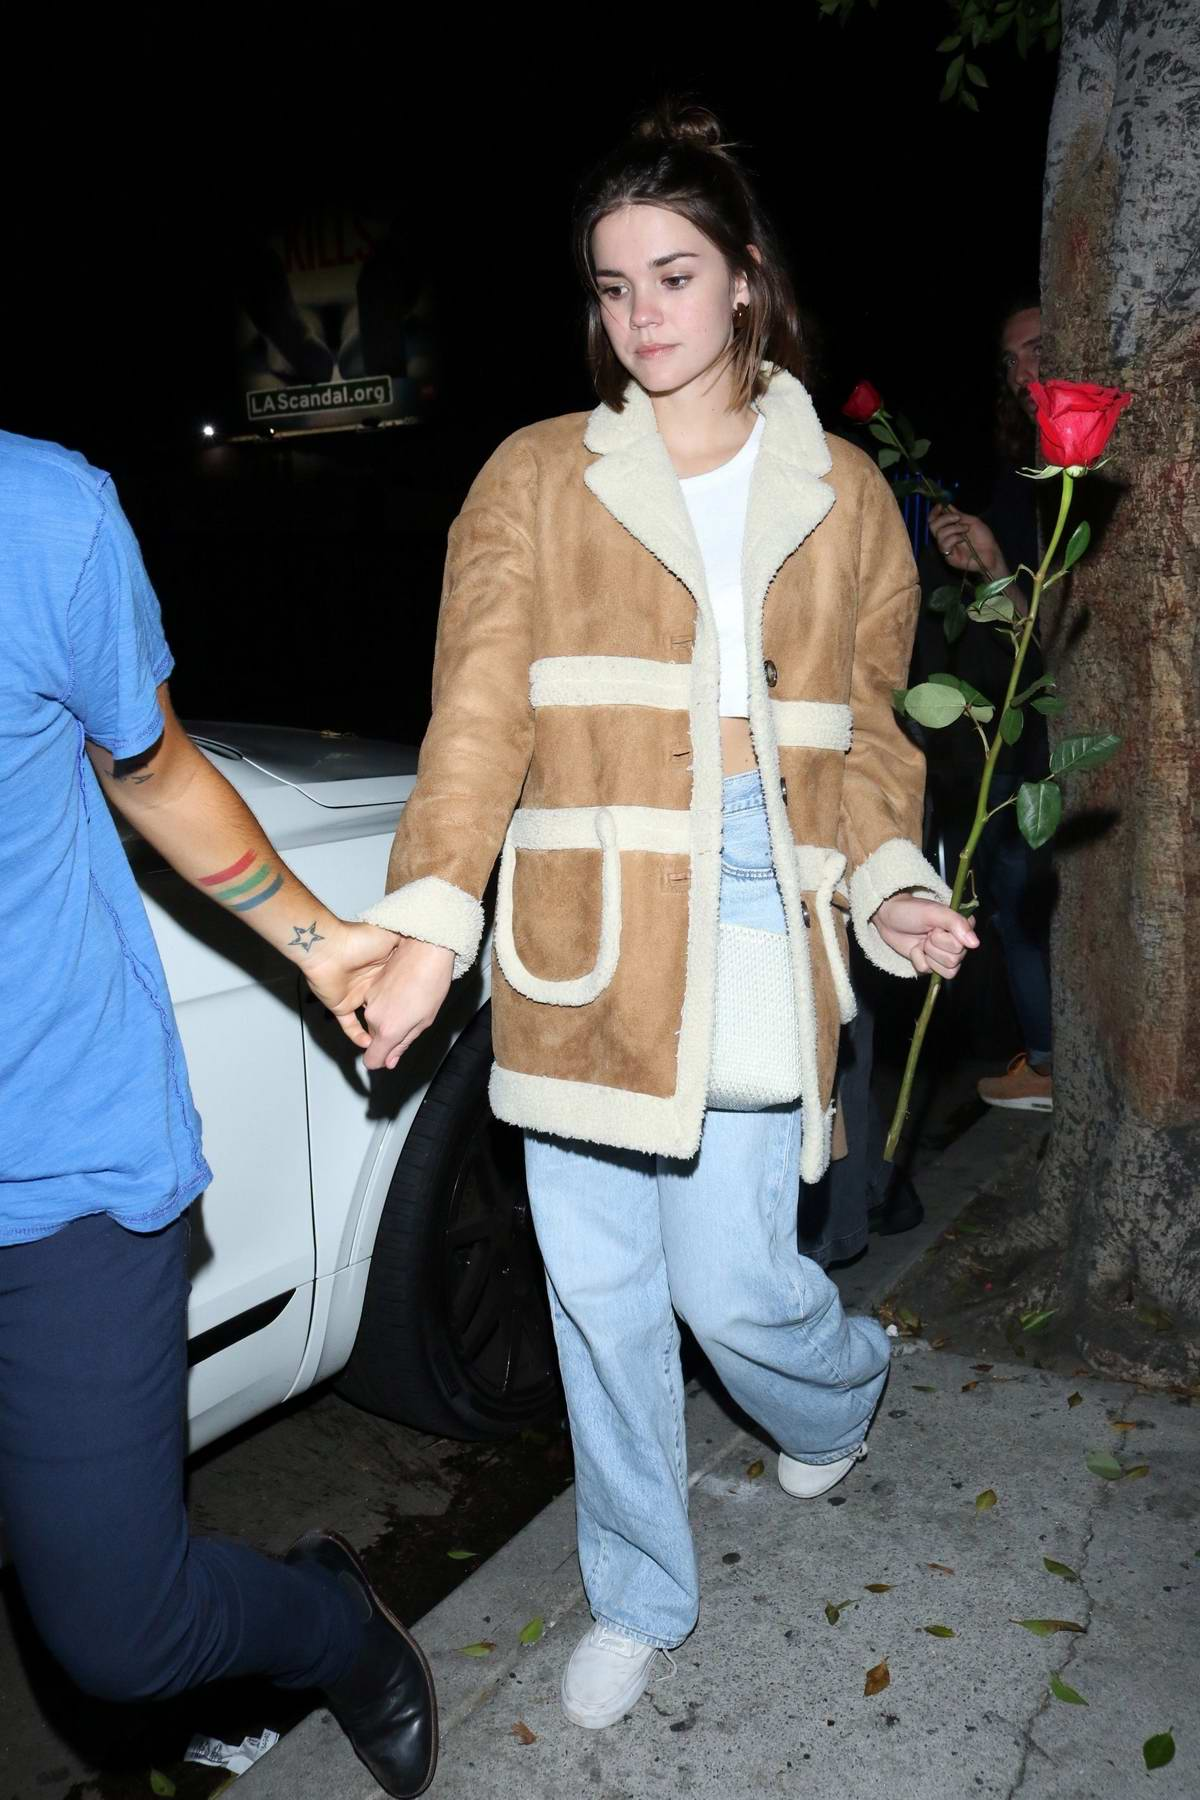 Maia Mitchell holds on to a red rose as she leaves the Warwick nightclub with Rudy Mancuso in Hollywood, California